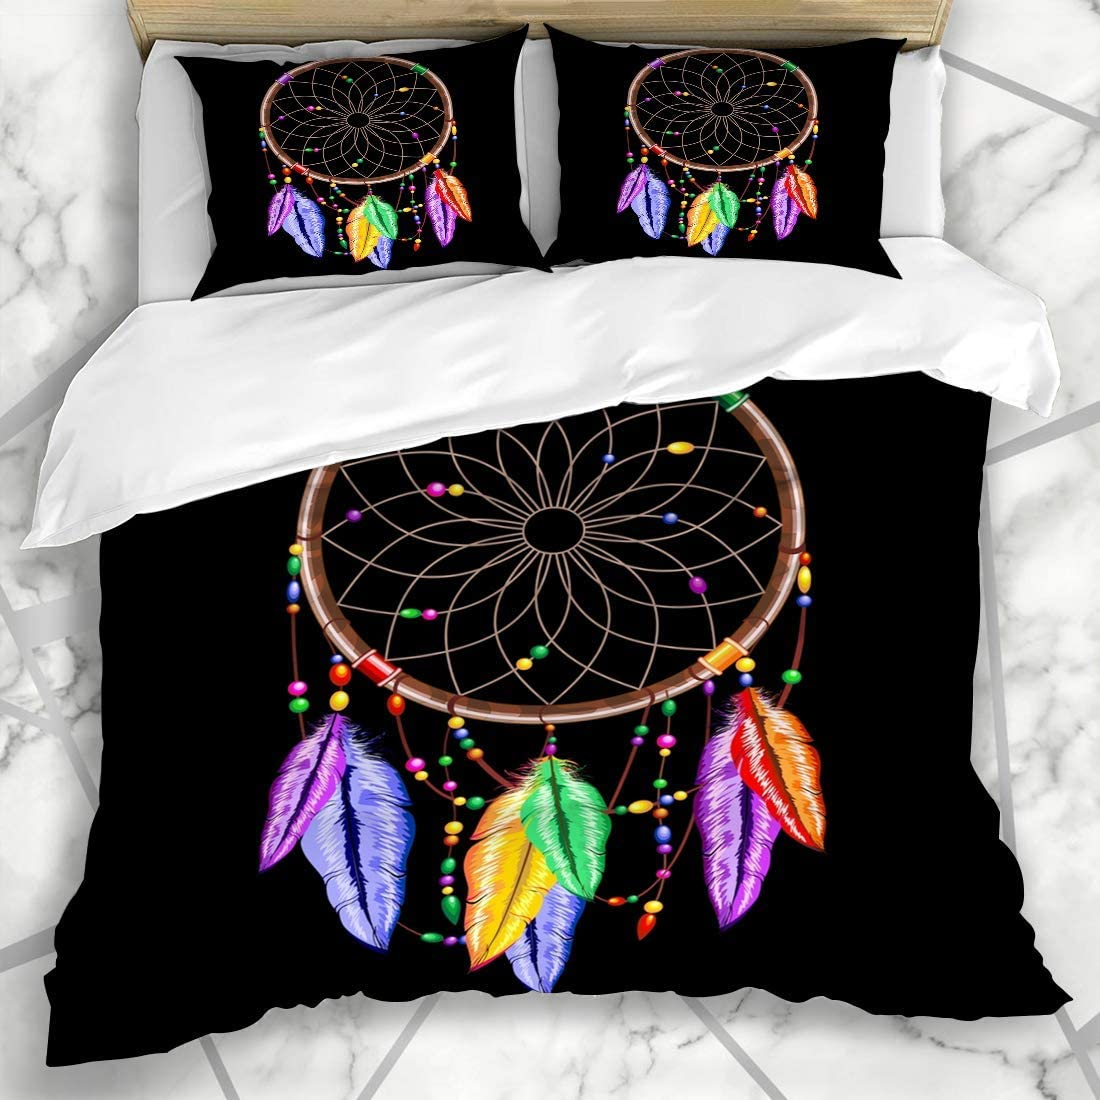 Duromhua Bedding Duvet Cover Set Abstract Ancient Dream Catcher Rainbow Feathers American Beads Cordage Culture Hoop Indian Microfiber New Three Piece Set Of Various Patterns 135 200 Amazon Co Uk Kitchen Home